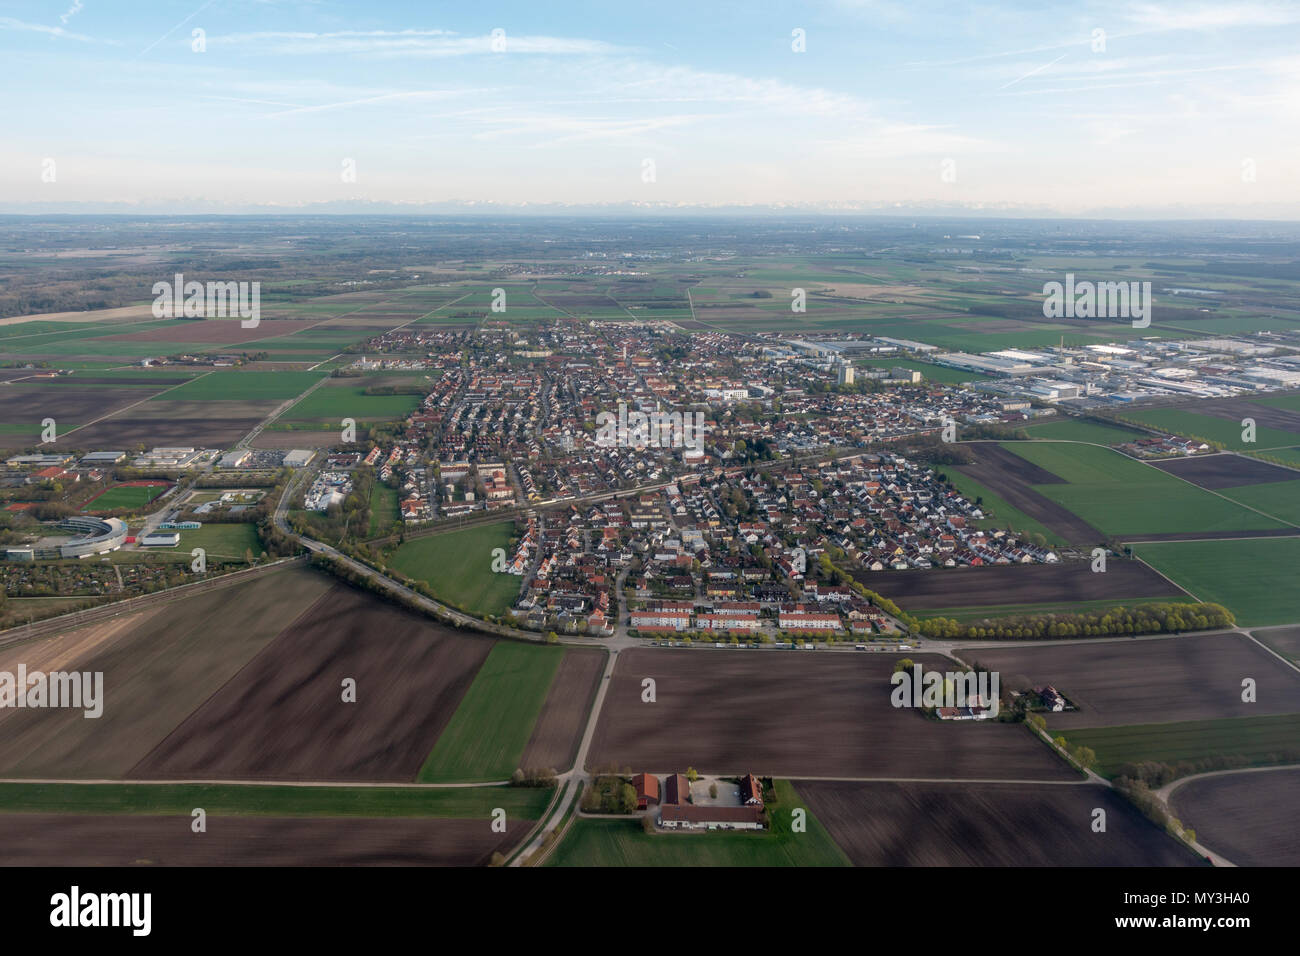 Aerial view of Neufahrn bei Freising on the western approach to Munich Airpoert (Flughafen München) Germany. - Stock Image